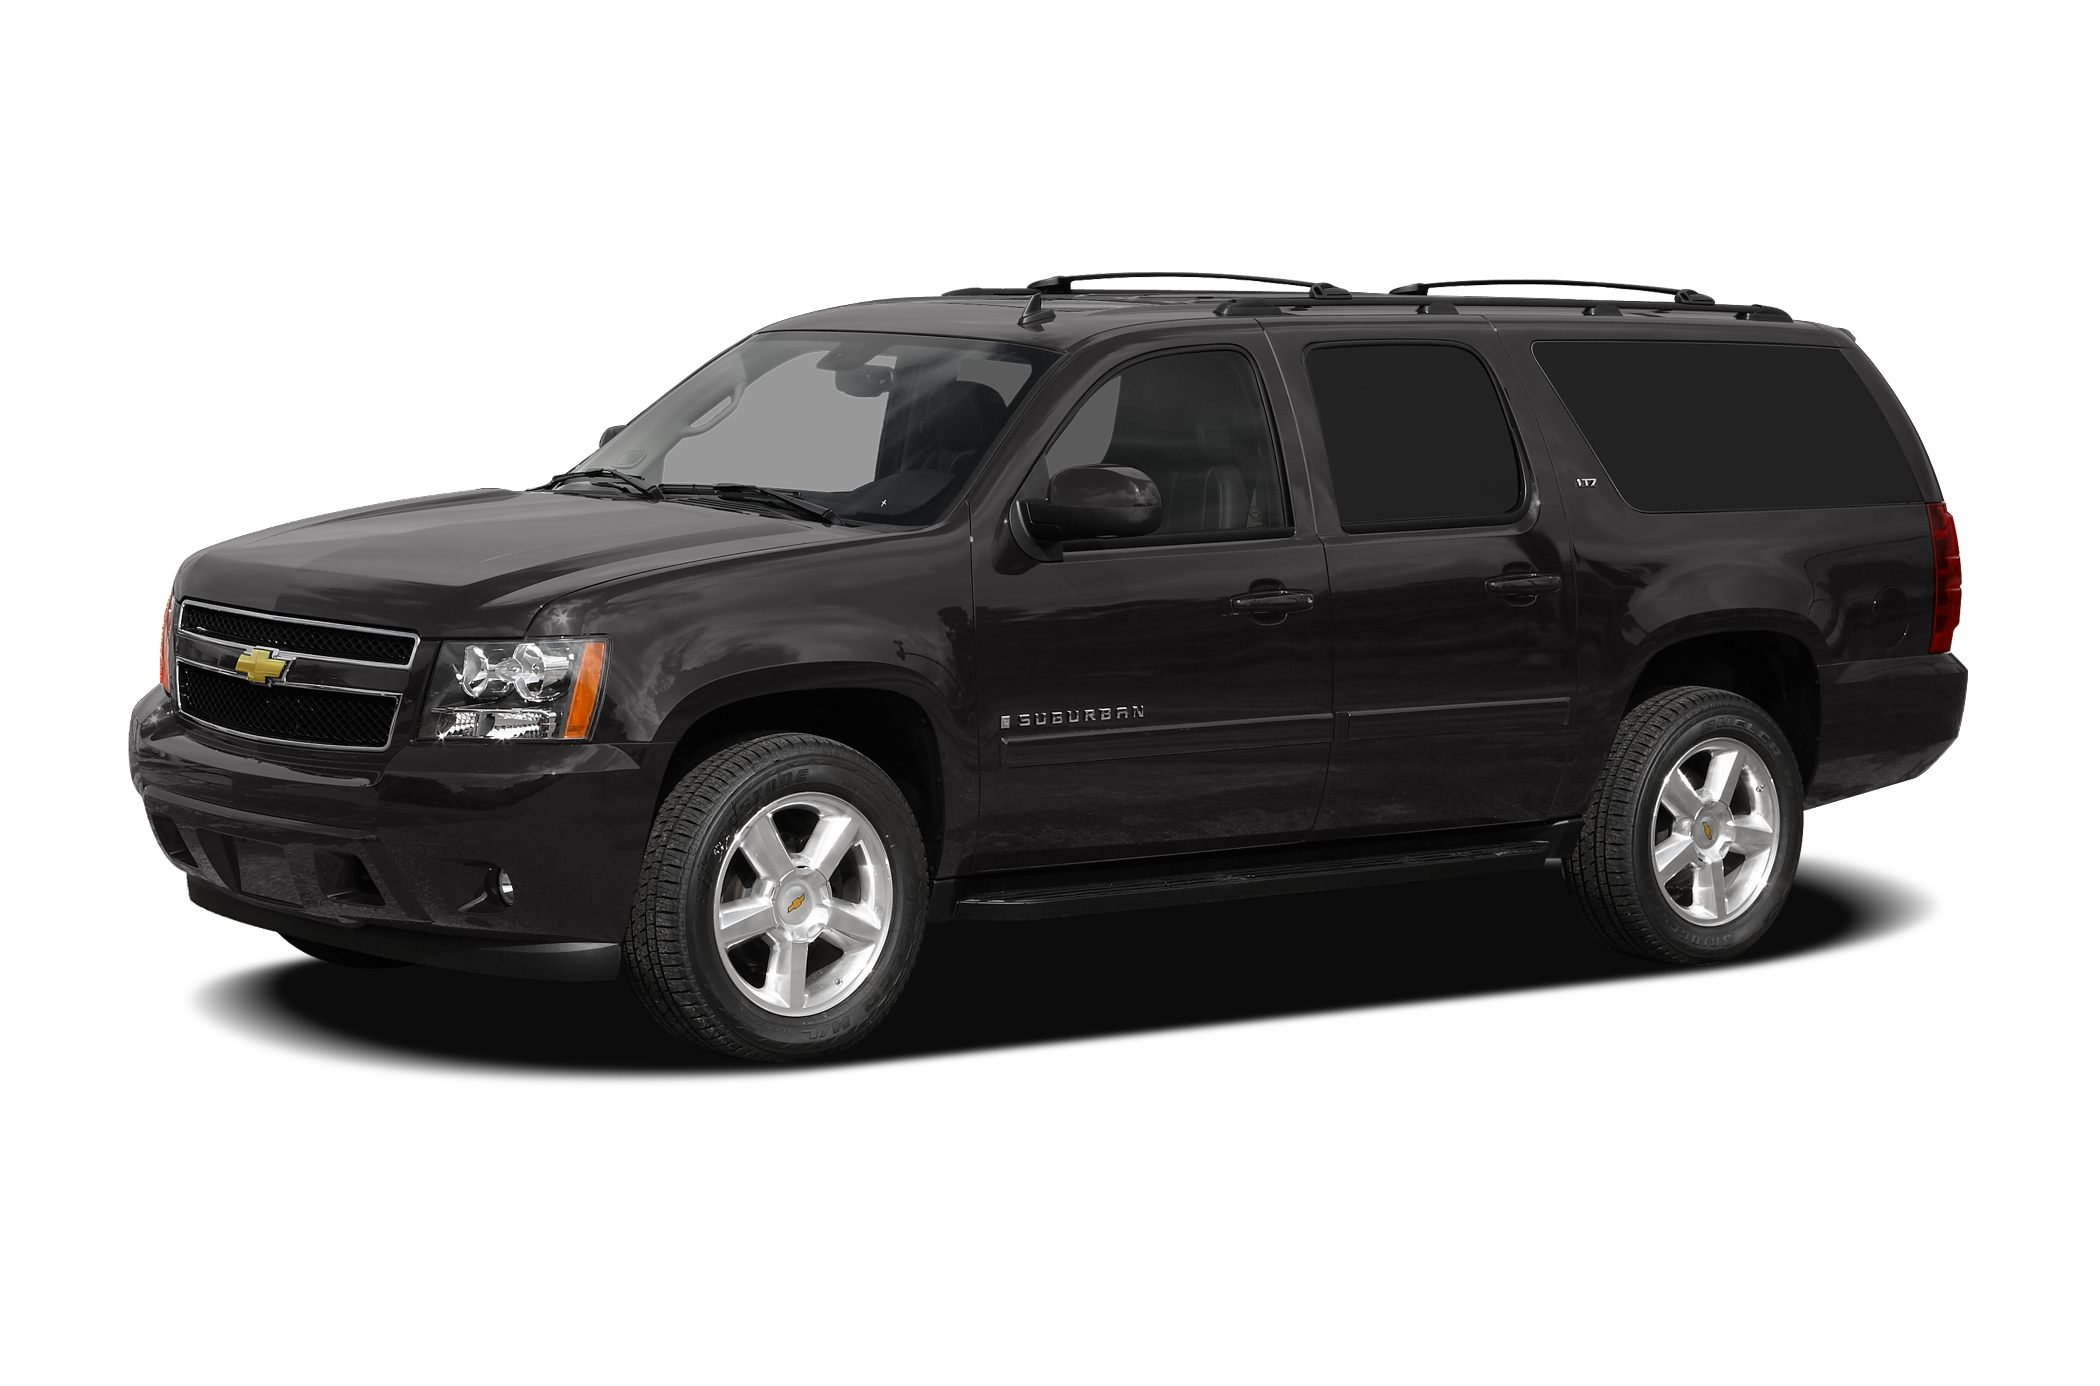 2008 Chevrolet Suburban 1500 LS SUV for sale in Texarkana for $20,986 with 117,408 miles.